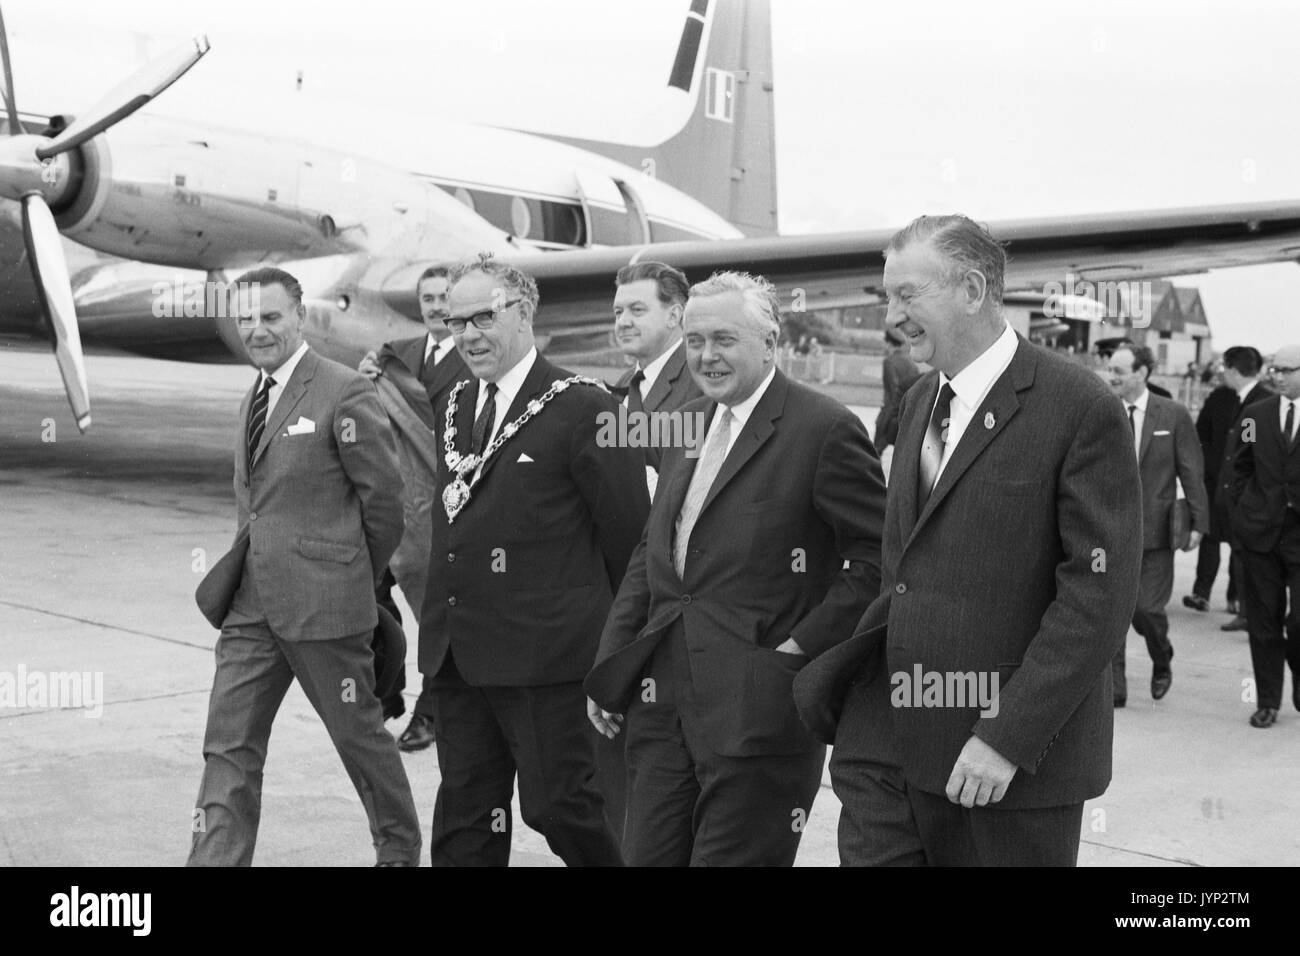 British Prime Minister Harold Wilson arriving at the Trades Union Congress in Blackpool, 1966. - Stock Image